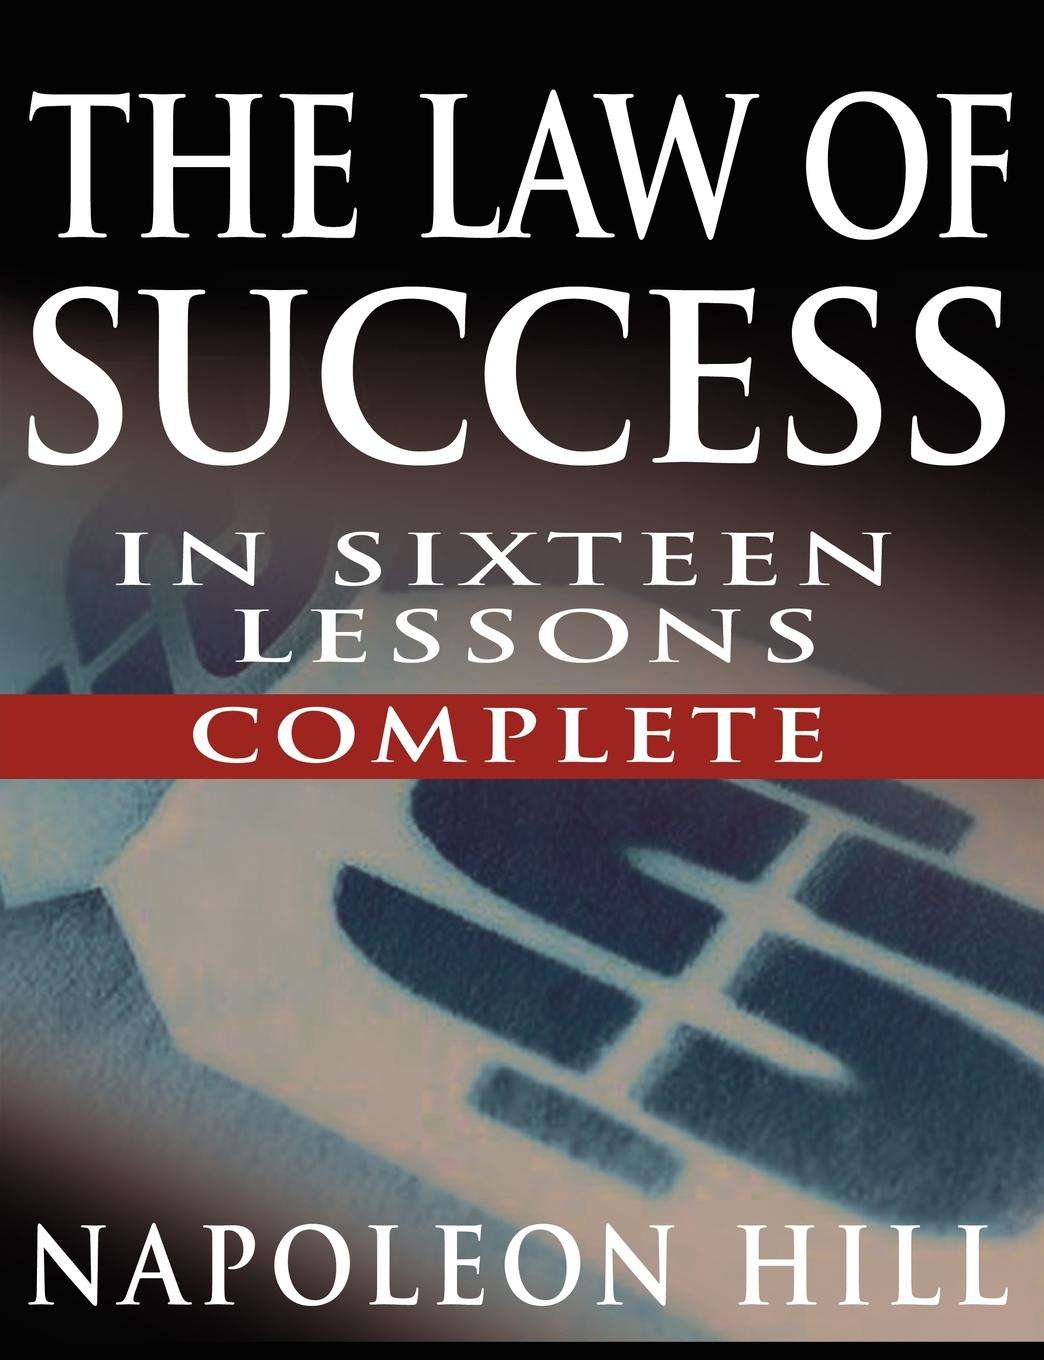 Napoleon Hill The Law of Success In Sixteen Lessons by Napoleon Hill (Complete, Unabridged) new in stock hfp 2303